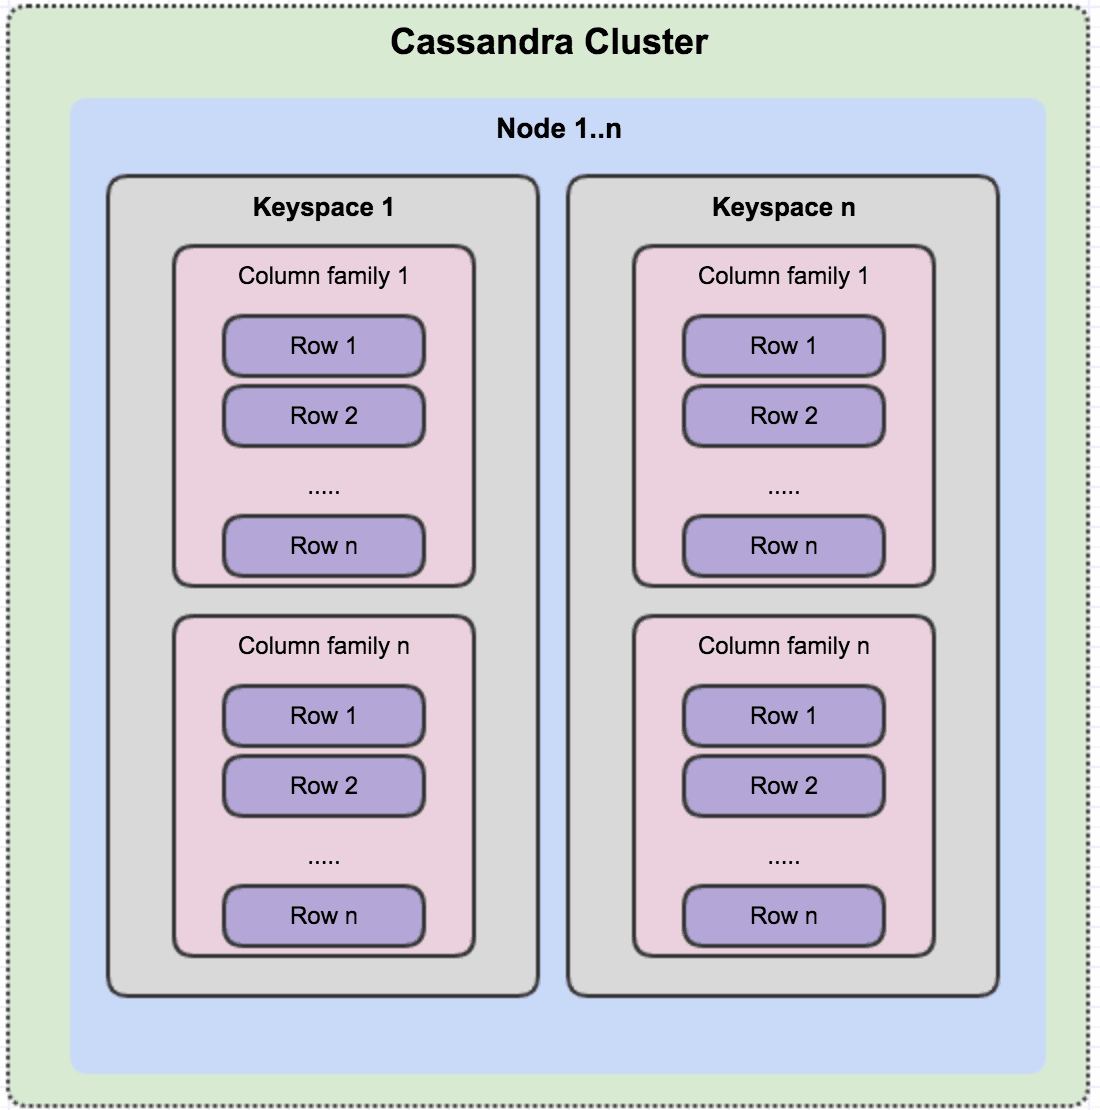 Cassandra Cluster  Node l..n  Keyspace 1  Column family 1  Row 1  Row 2  Row n  Column family n  Row 1  Row 2  Row n  Keyspace n  Column family 1  Row 1  Row 2  Row n  Column family n  Row 1  Row 2  Row n